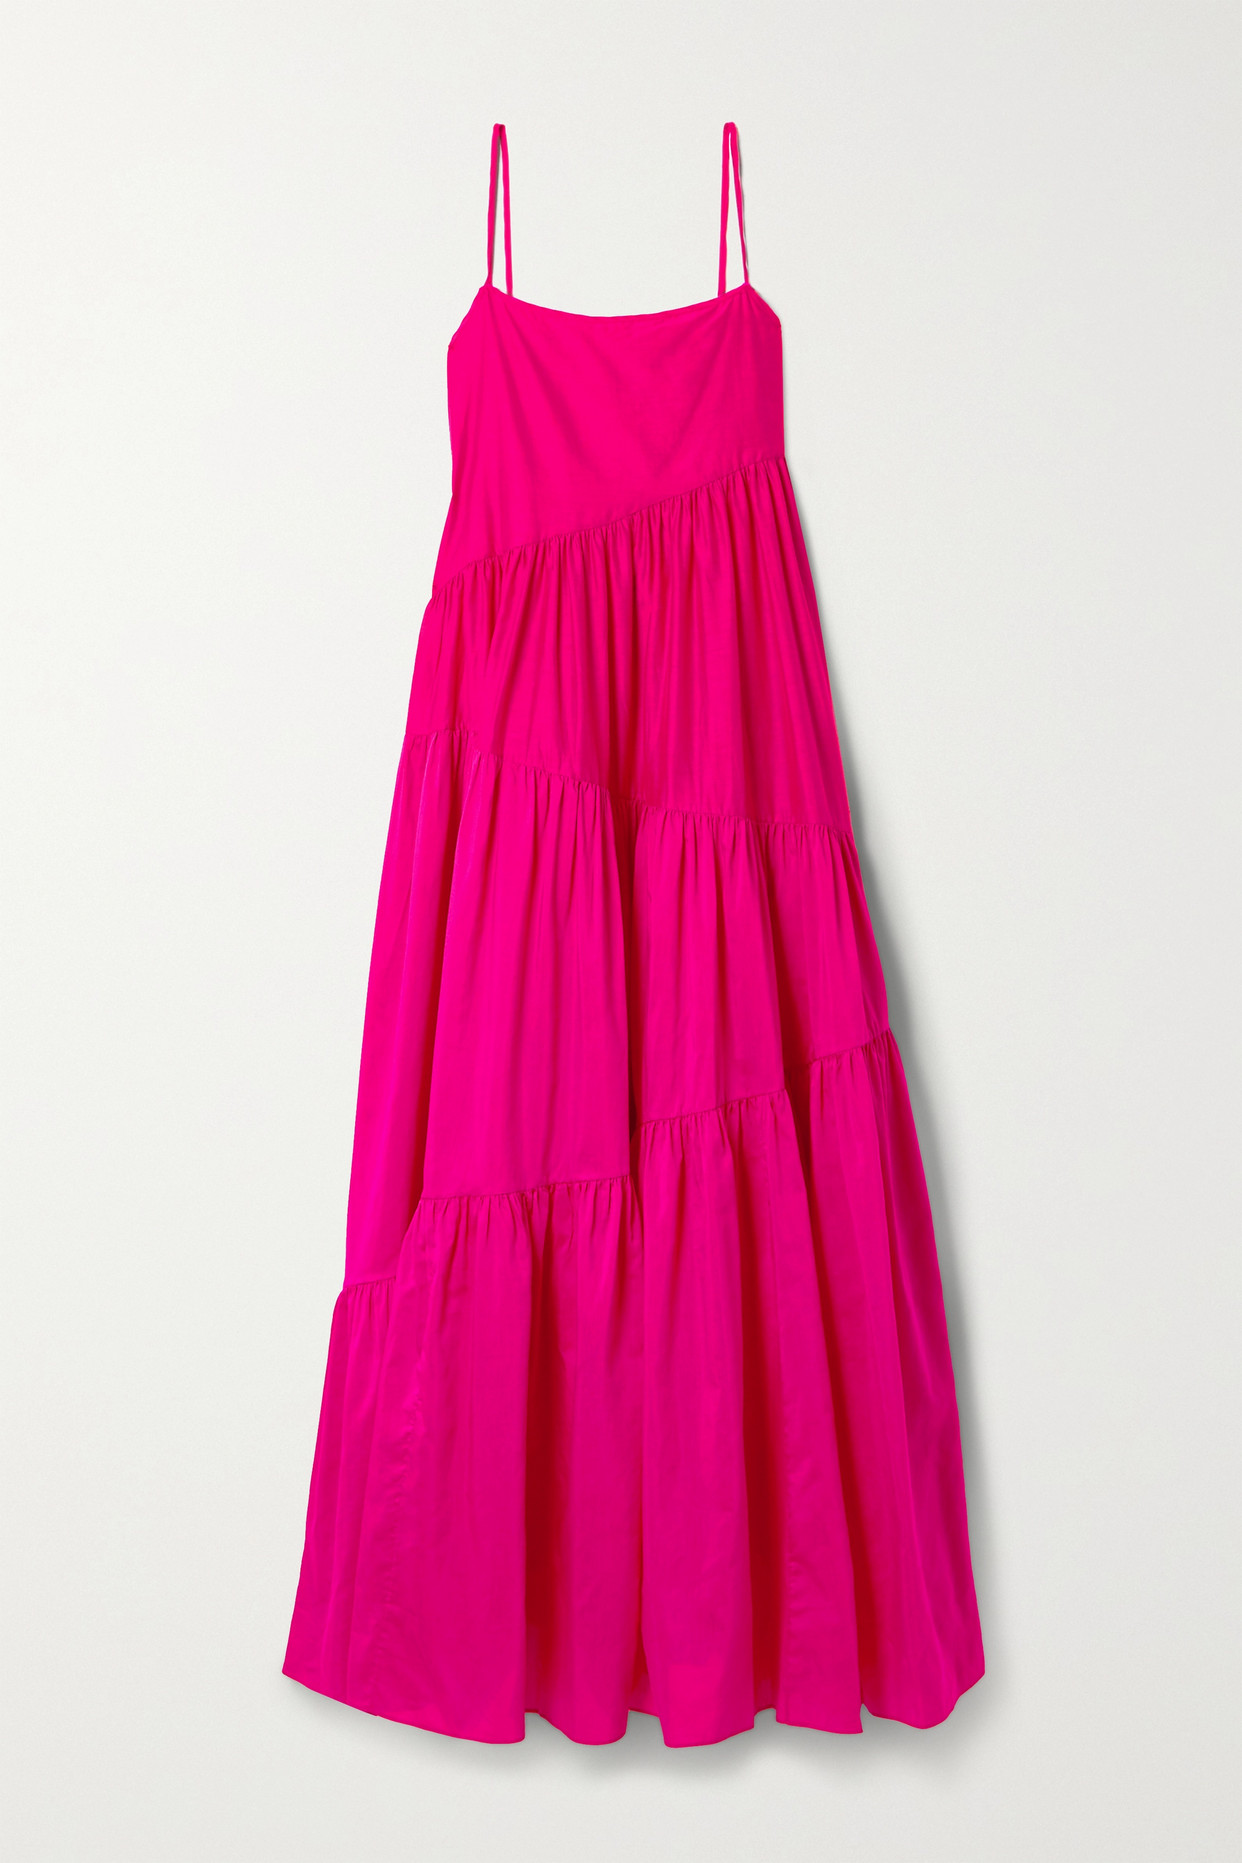 MATTEAU - + Net Sustain Open-back Tiered Cotton And Silk-blend Voile Maxi Dress - Pink - 5